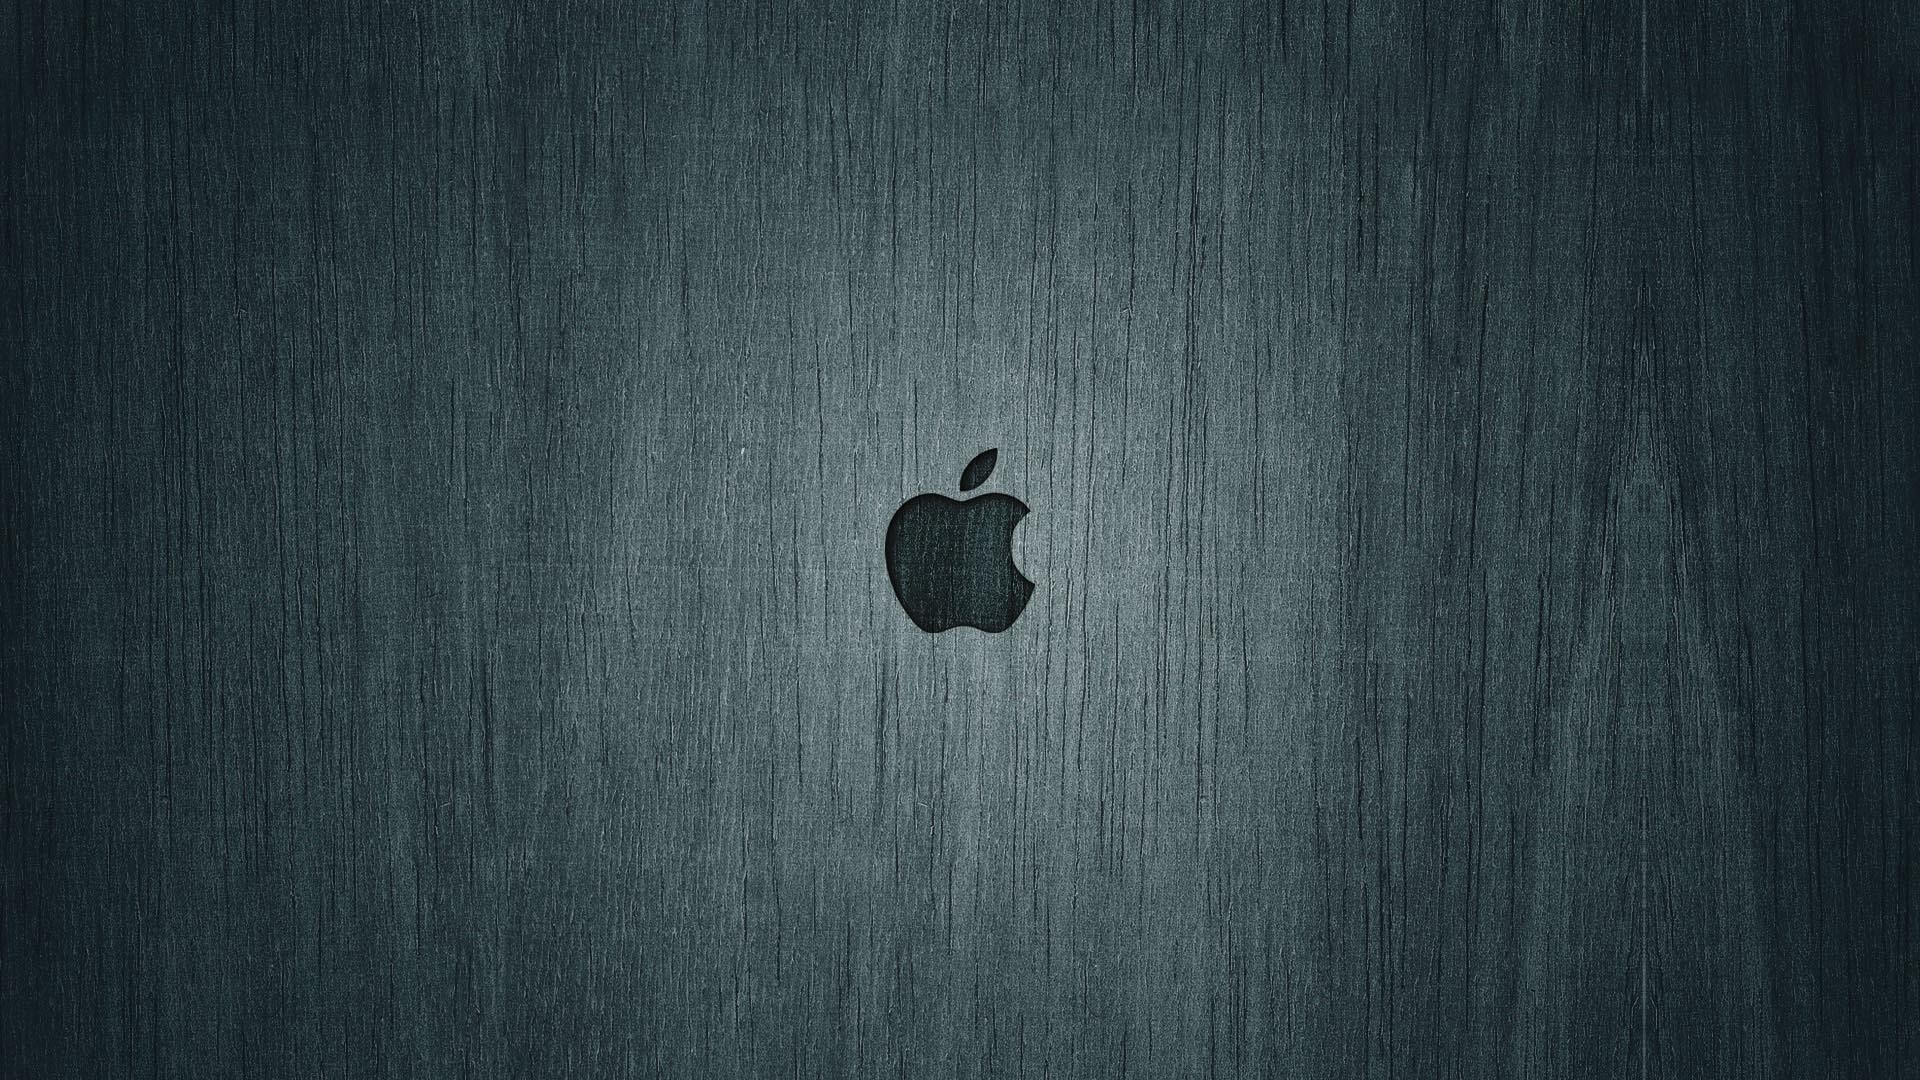 wallpapers apple 4k hd